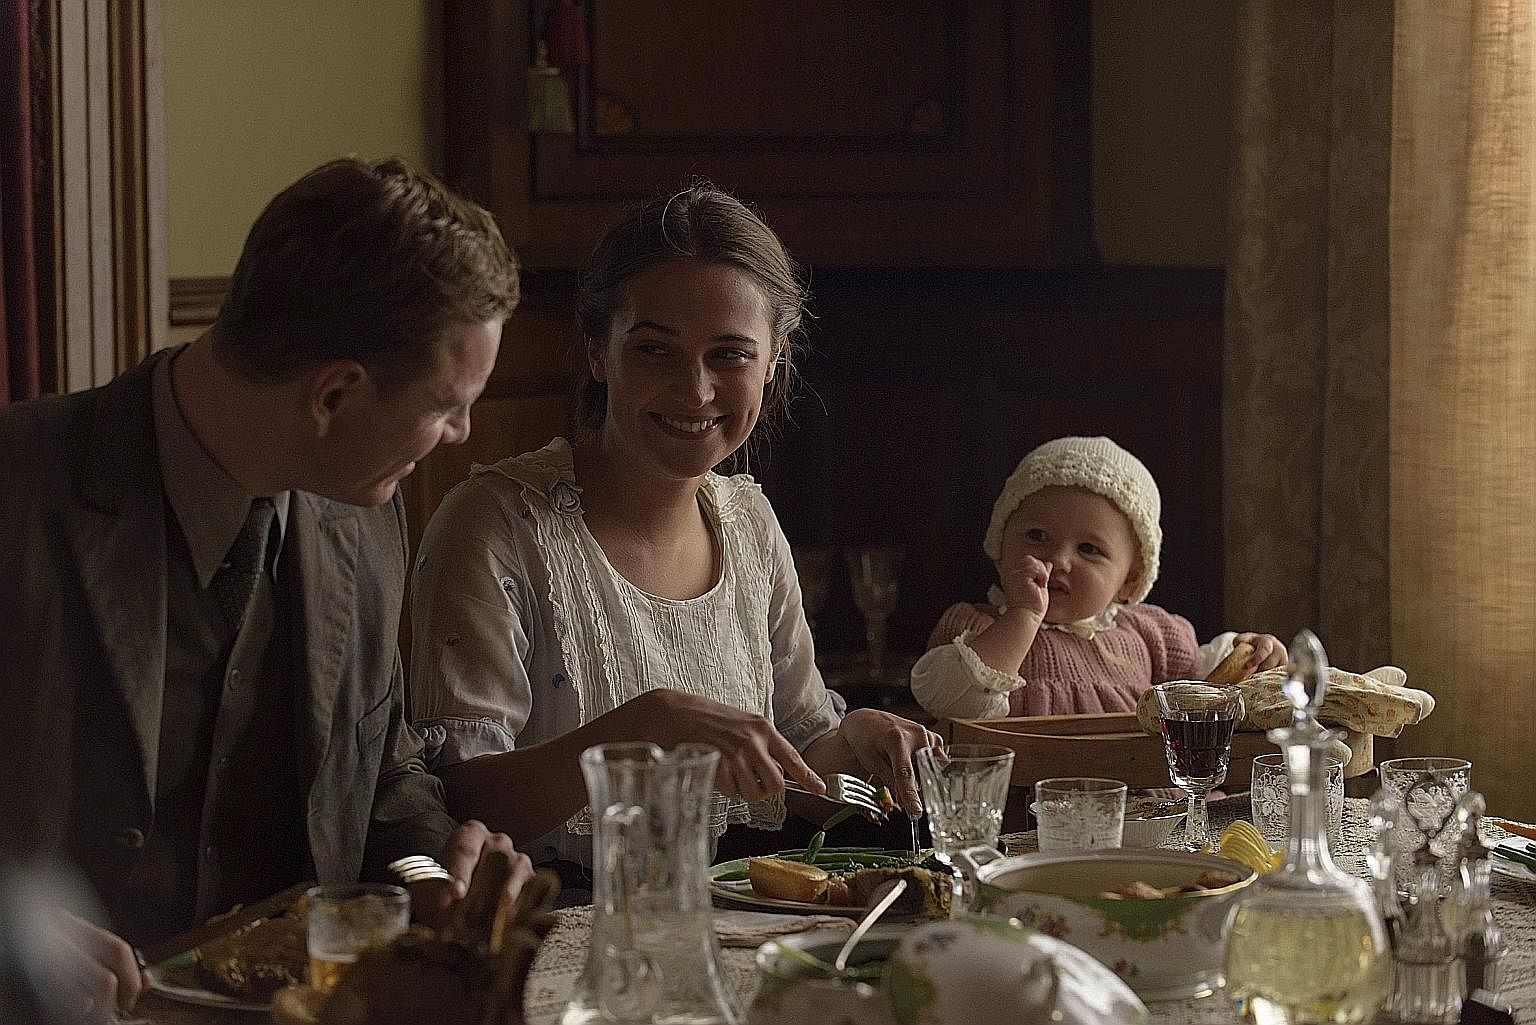 Michael Fassbender and Alicia Vikander (both above) in The Light Between Oceans; and Anya Taylor-Joy and James McAvoy in Split.